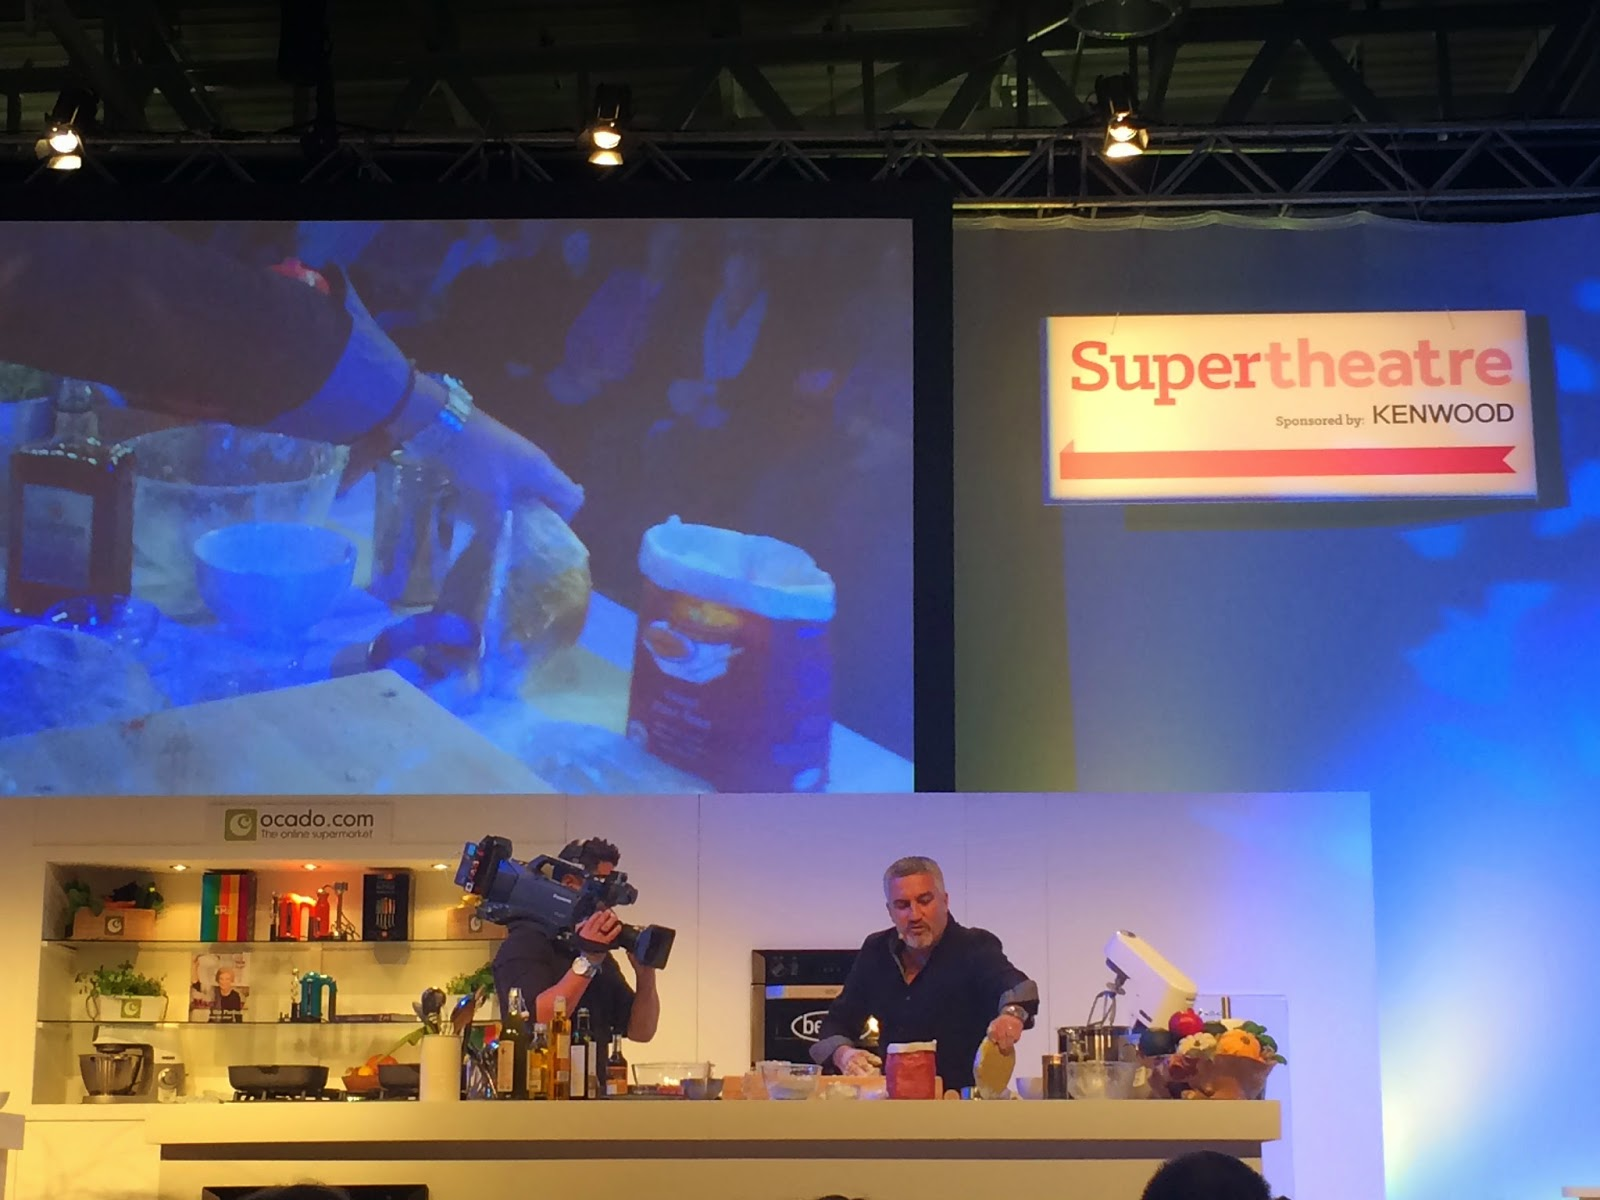 paul hollywood baking demonstration